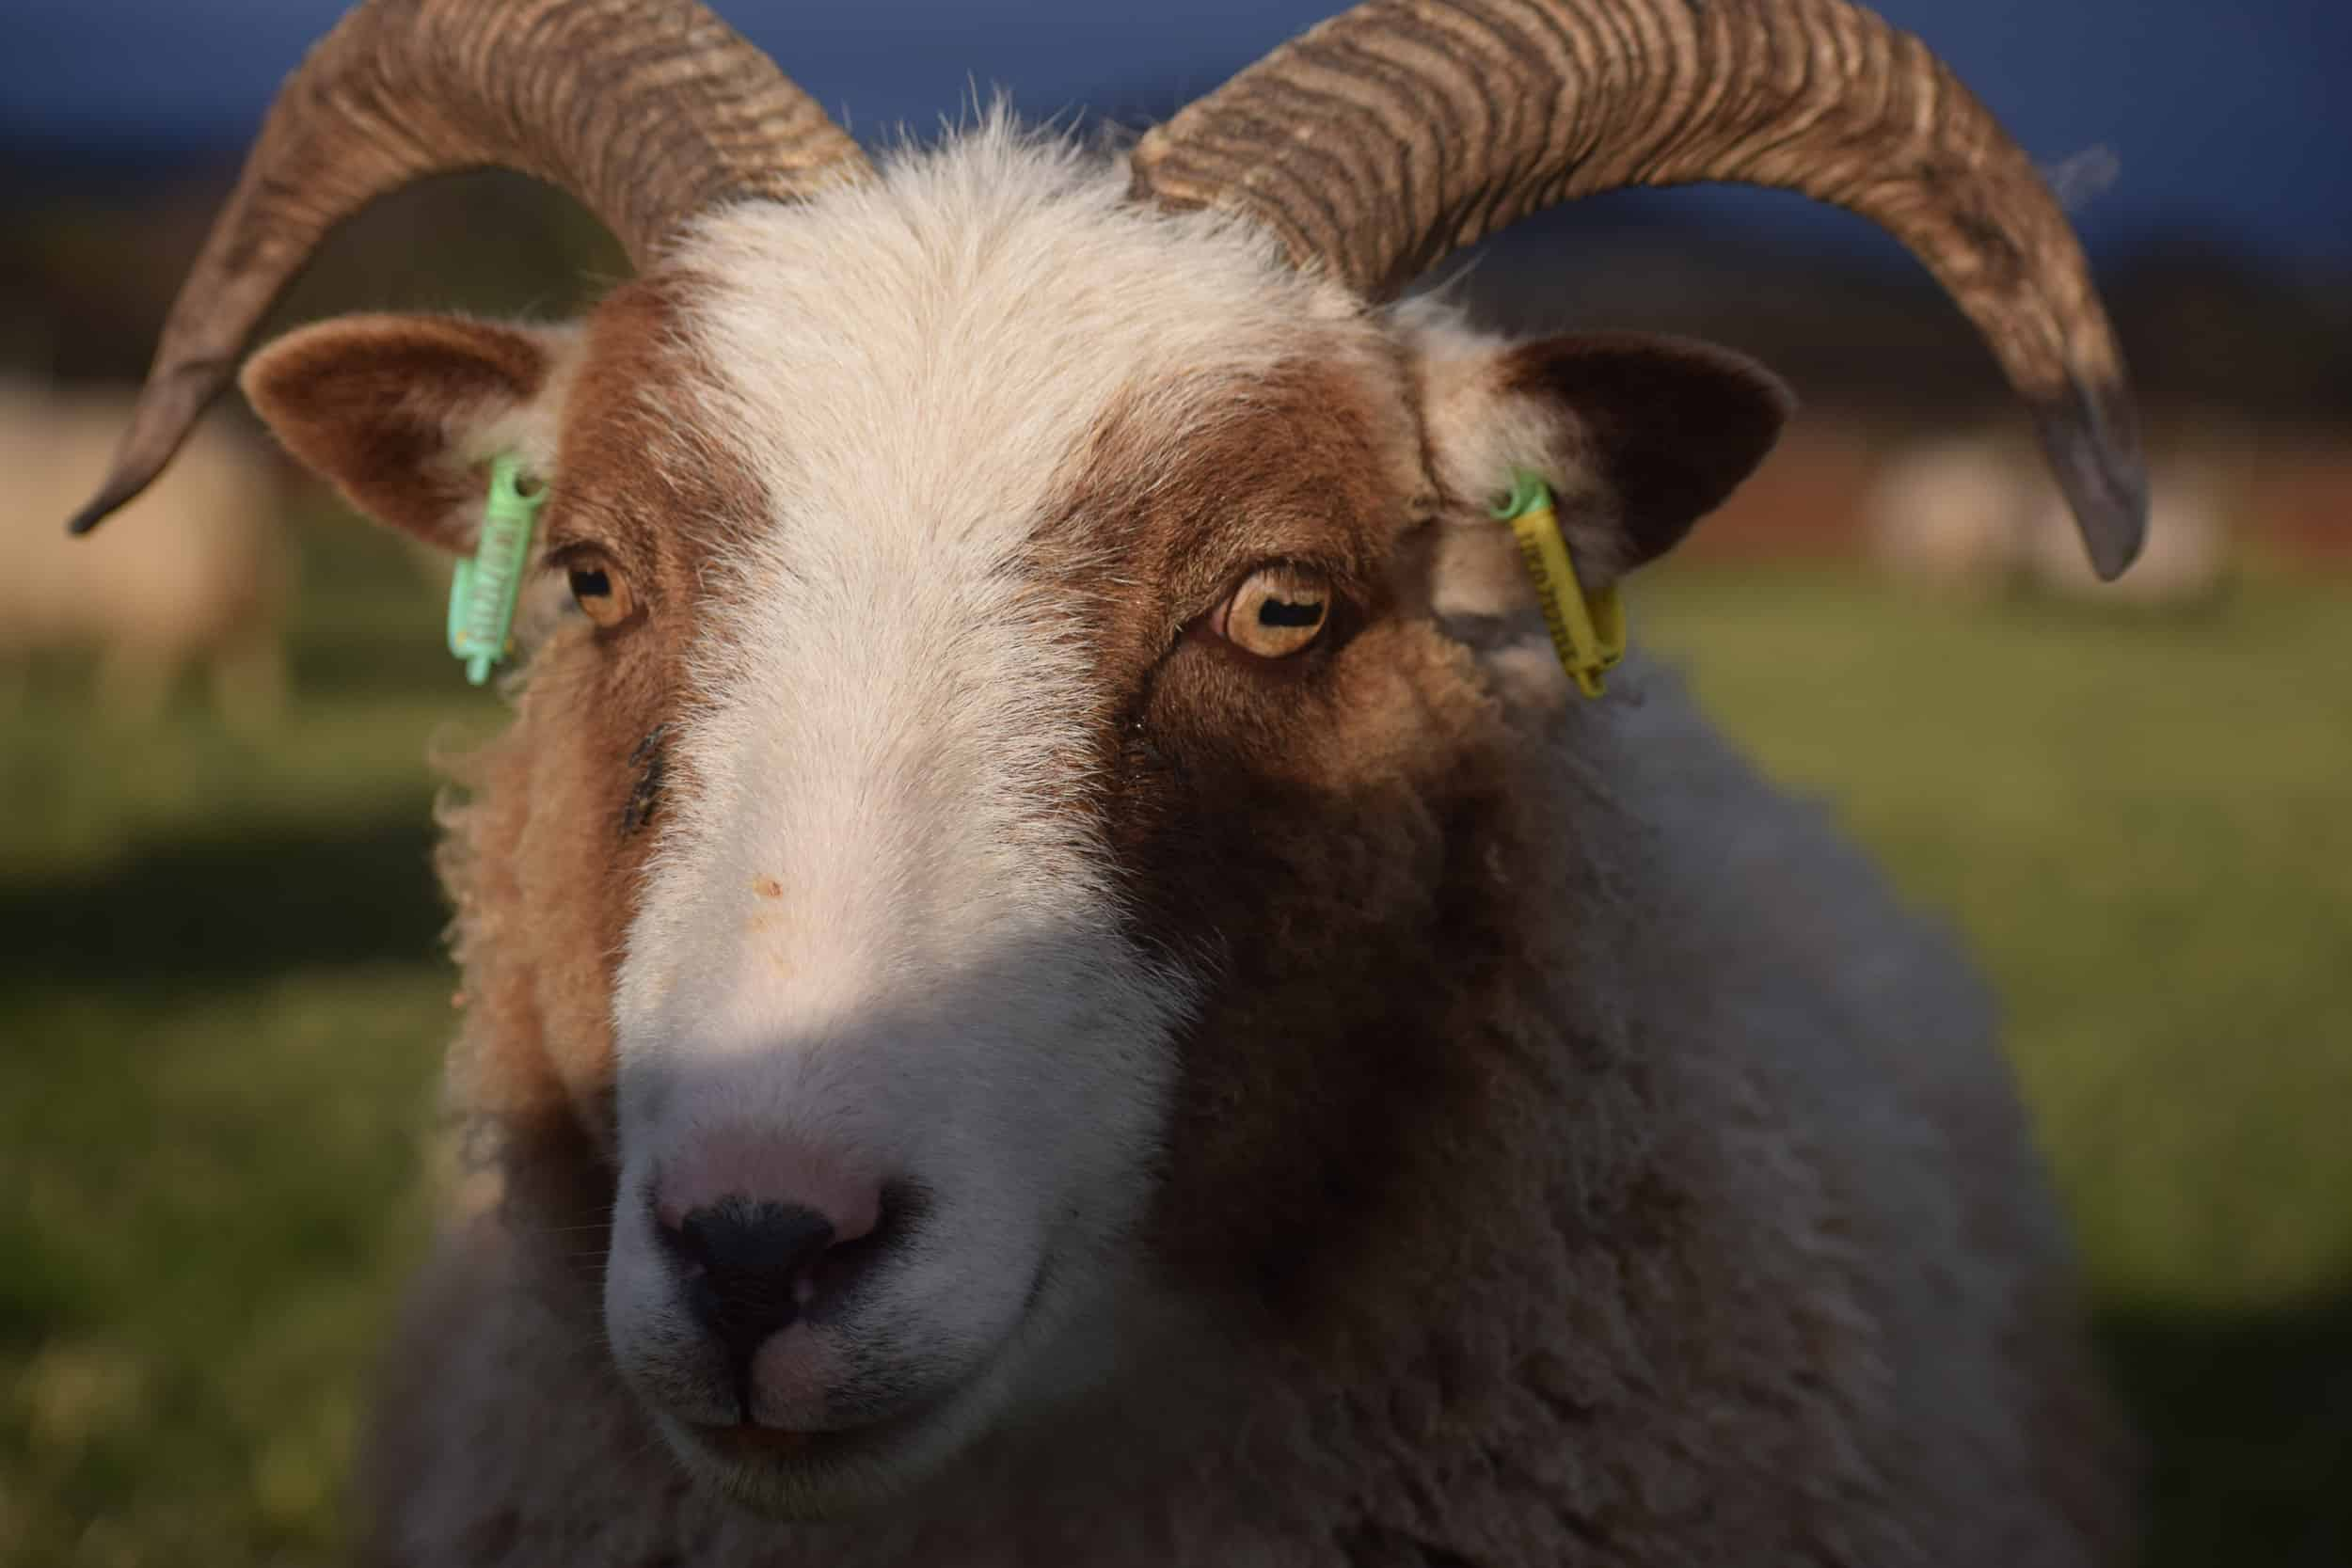 Pip brown mouflon spotted soay sheep cross pet sheep wool gifts 9